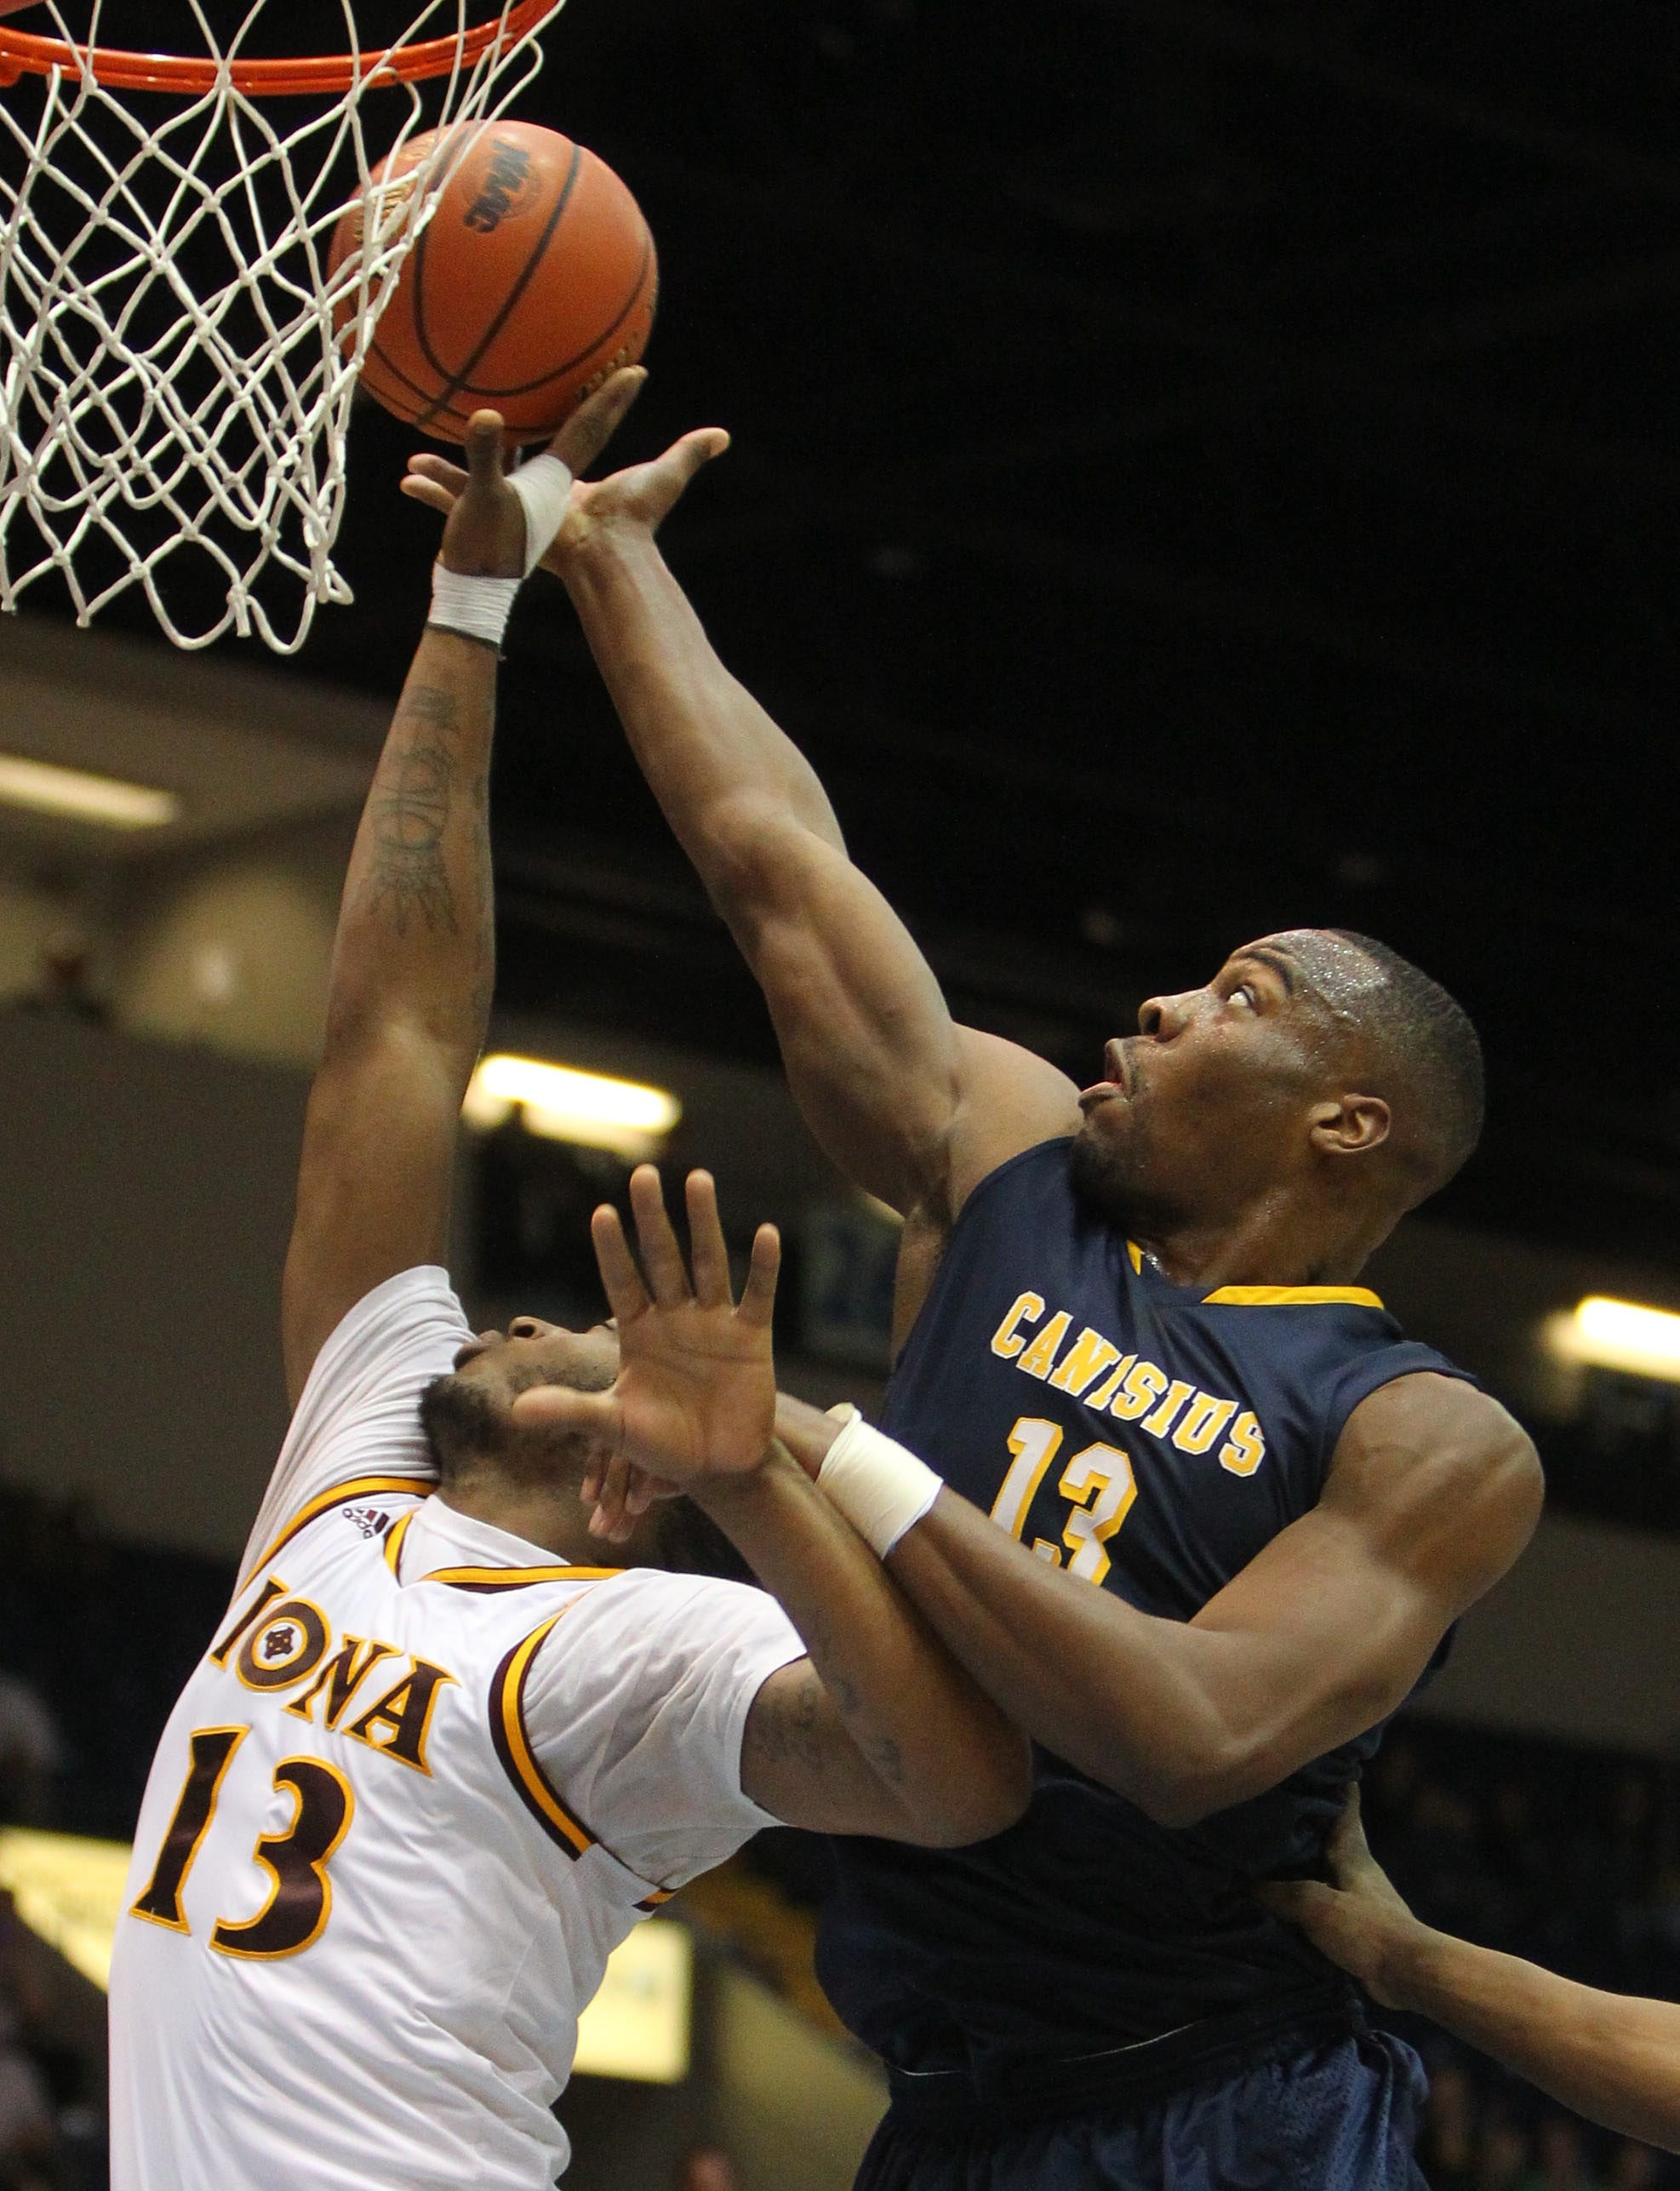 Canisius' Chris Manhertz (right) reaches for a rebound with Iona's David Laury.